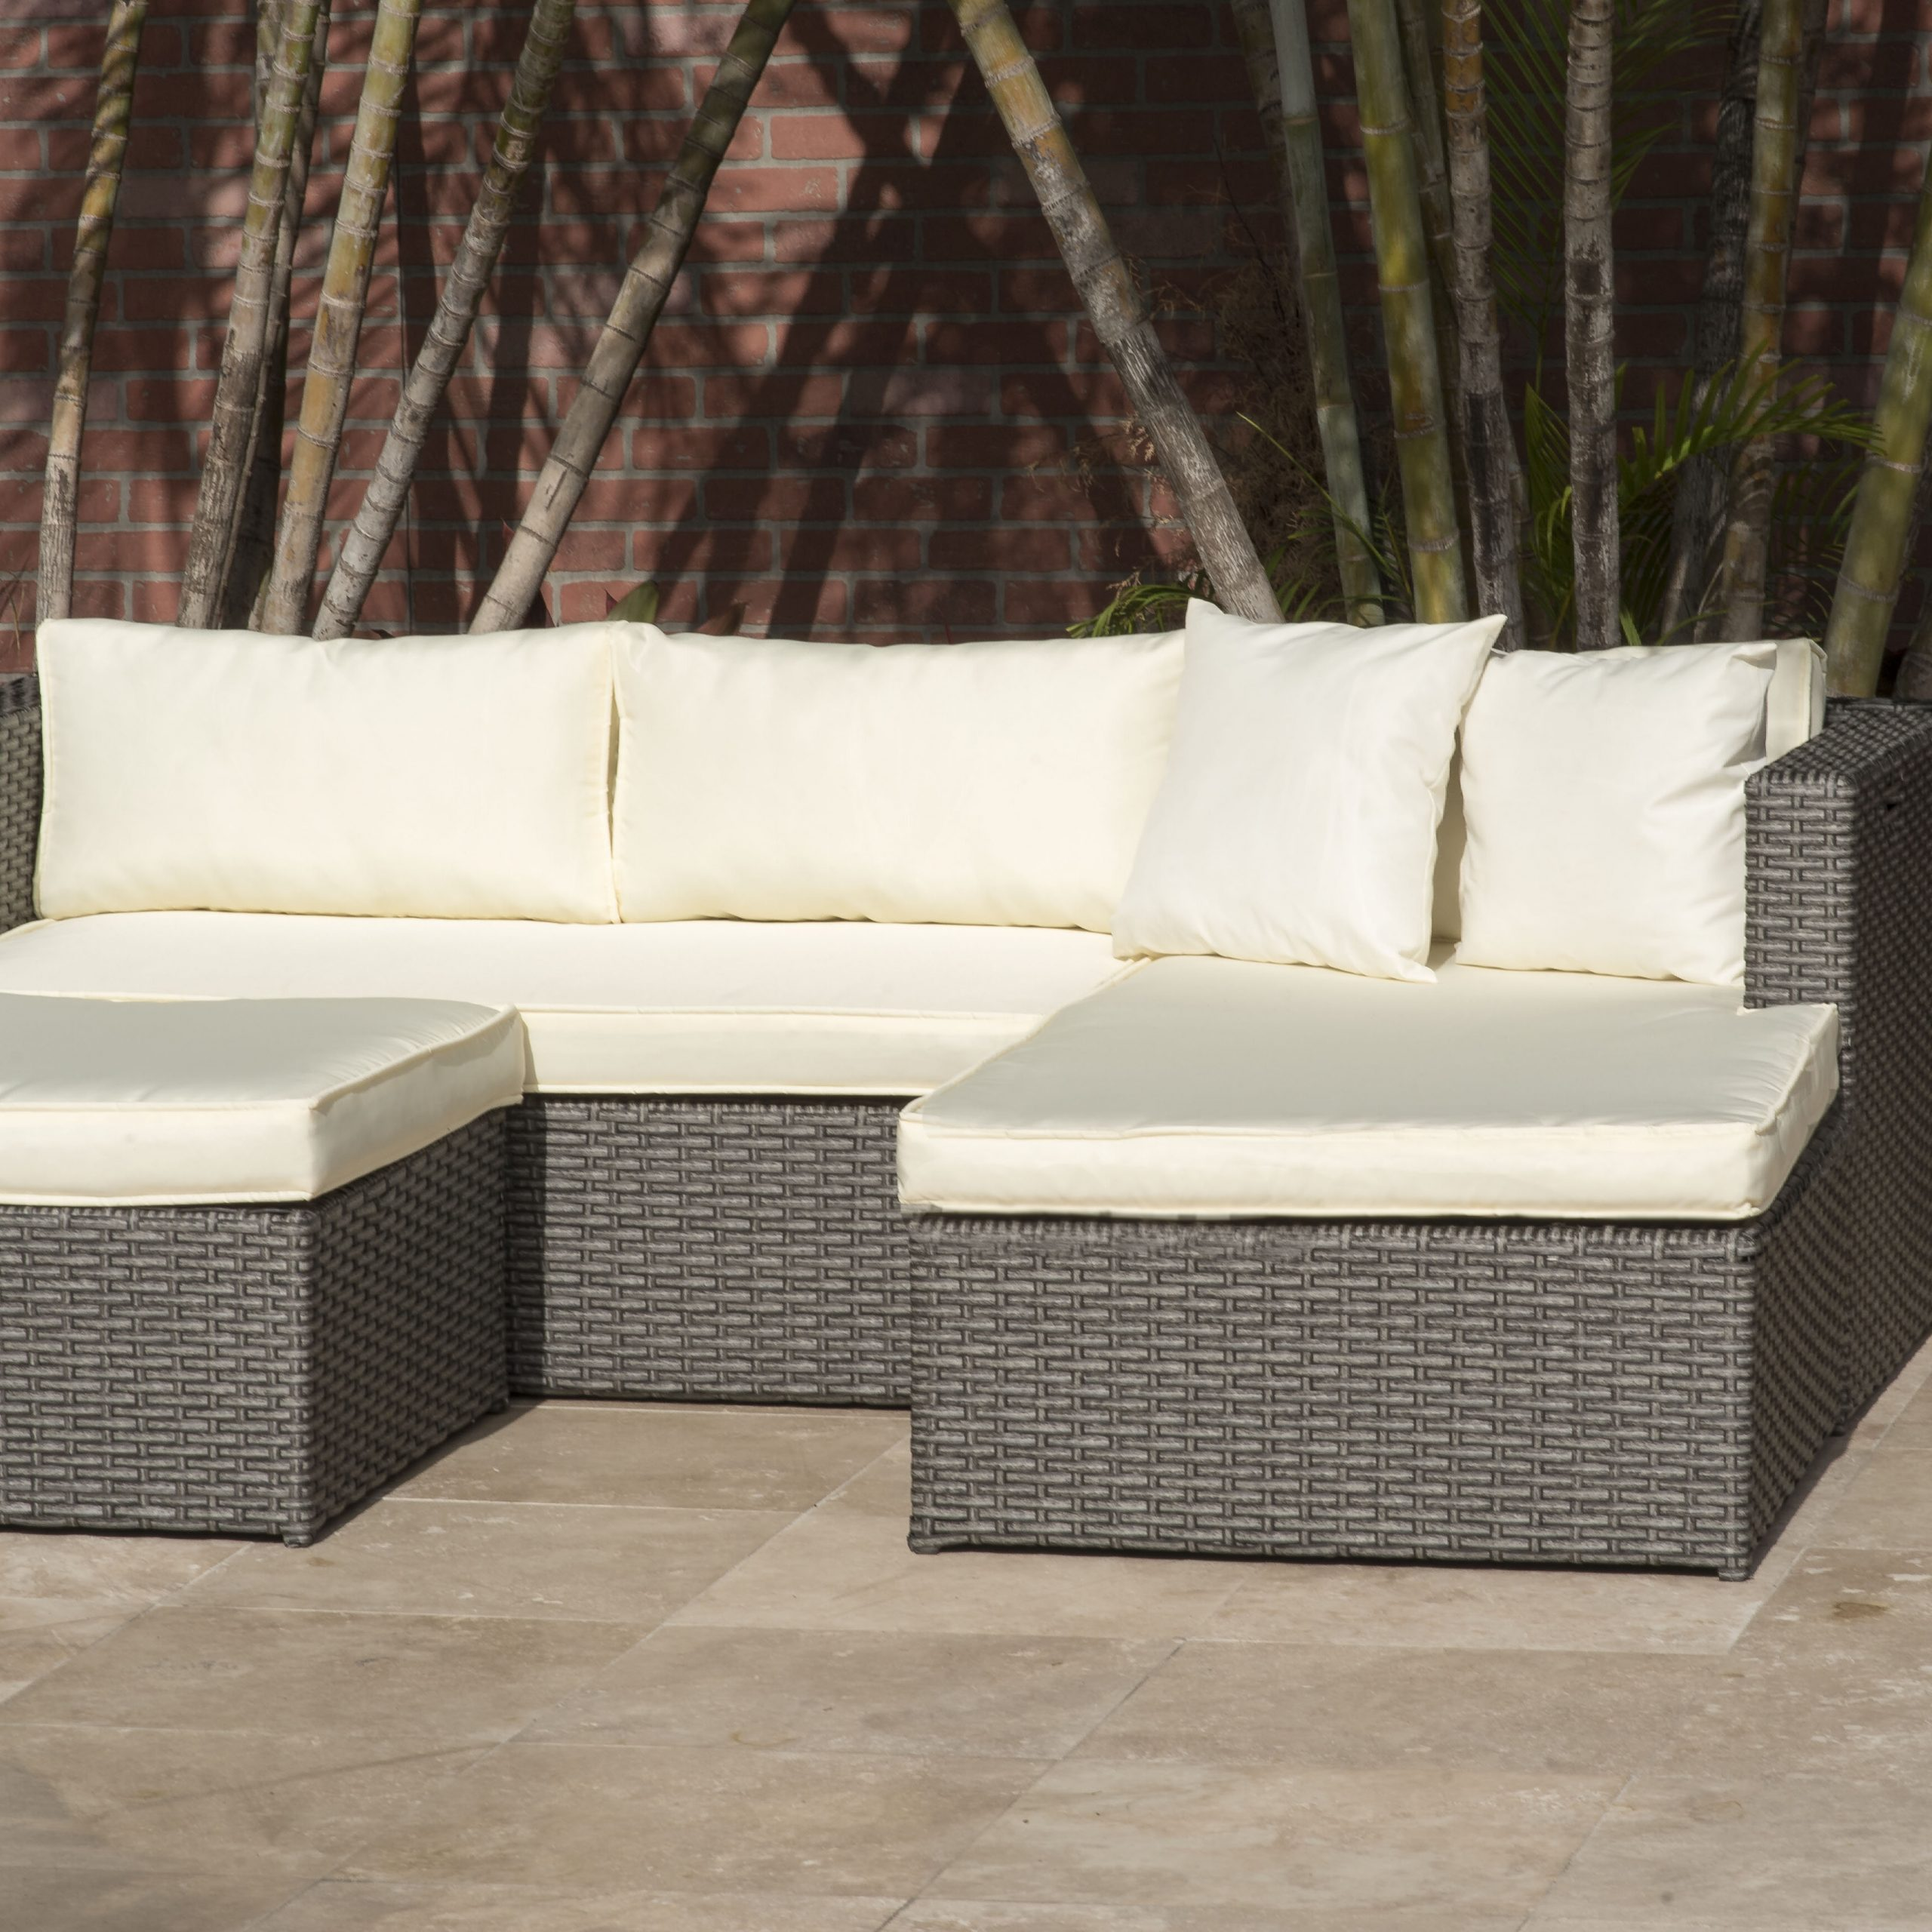 Popular Breakwater Bay Voyles 3 Piece Sectional Seating Group With For 4 Piece Sierra Sunbrella Seating Group (Gallery 11 of 25)